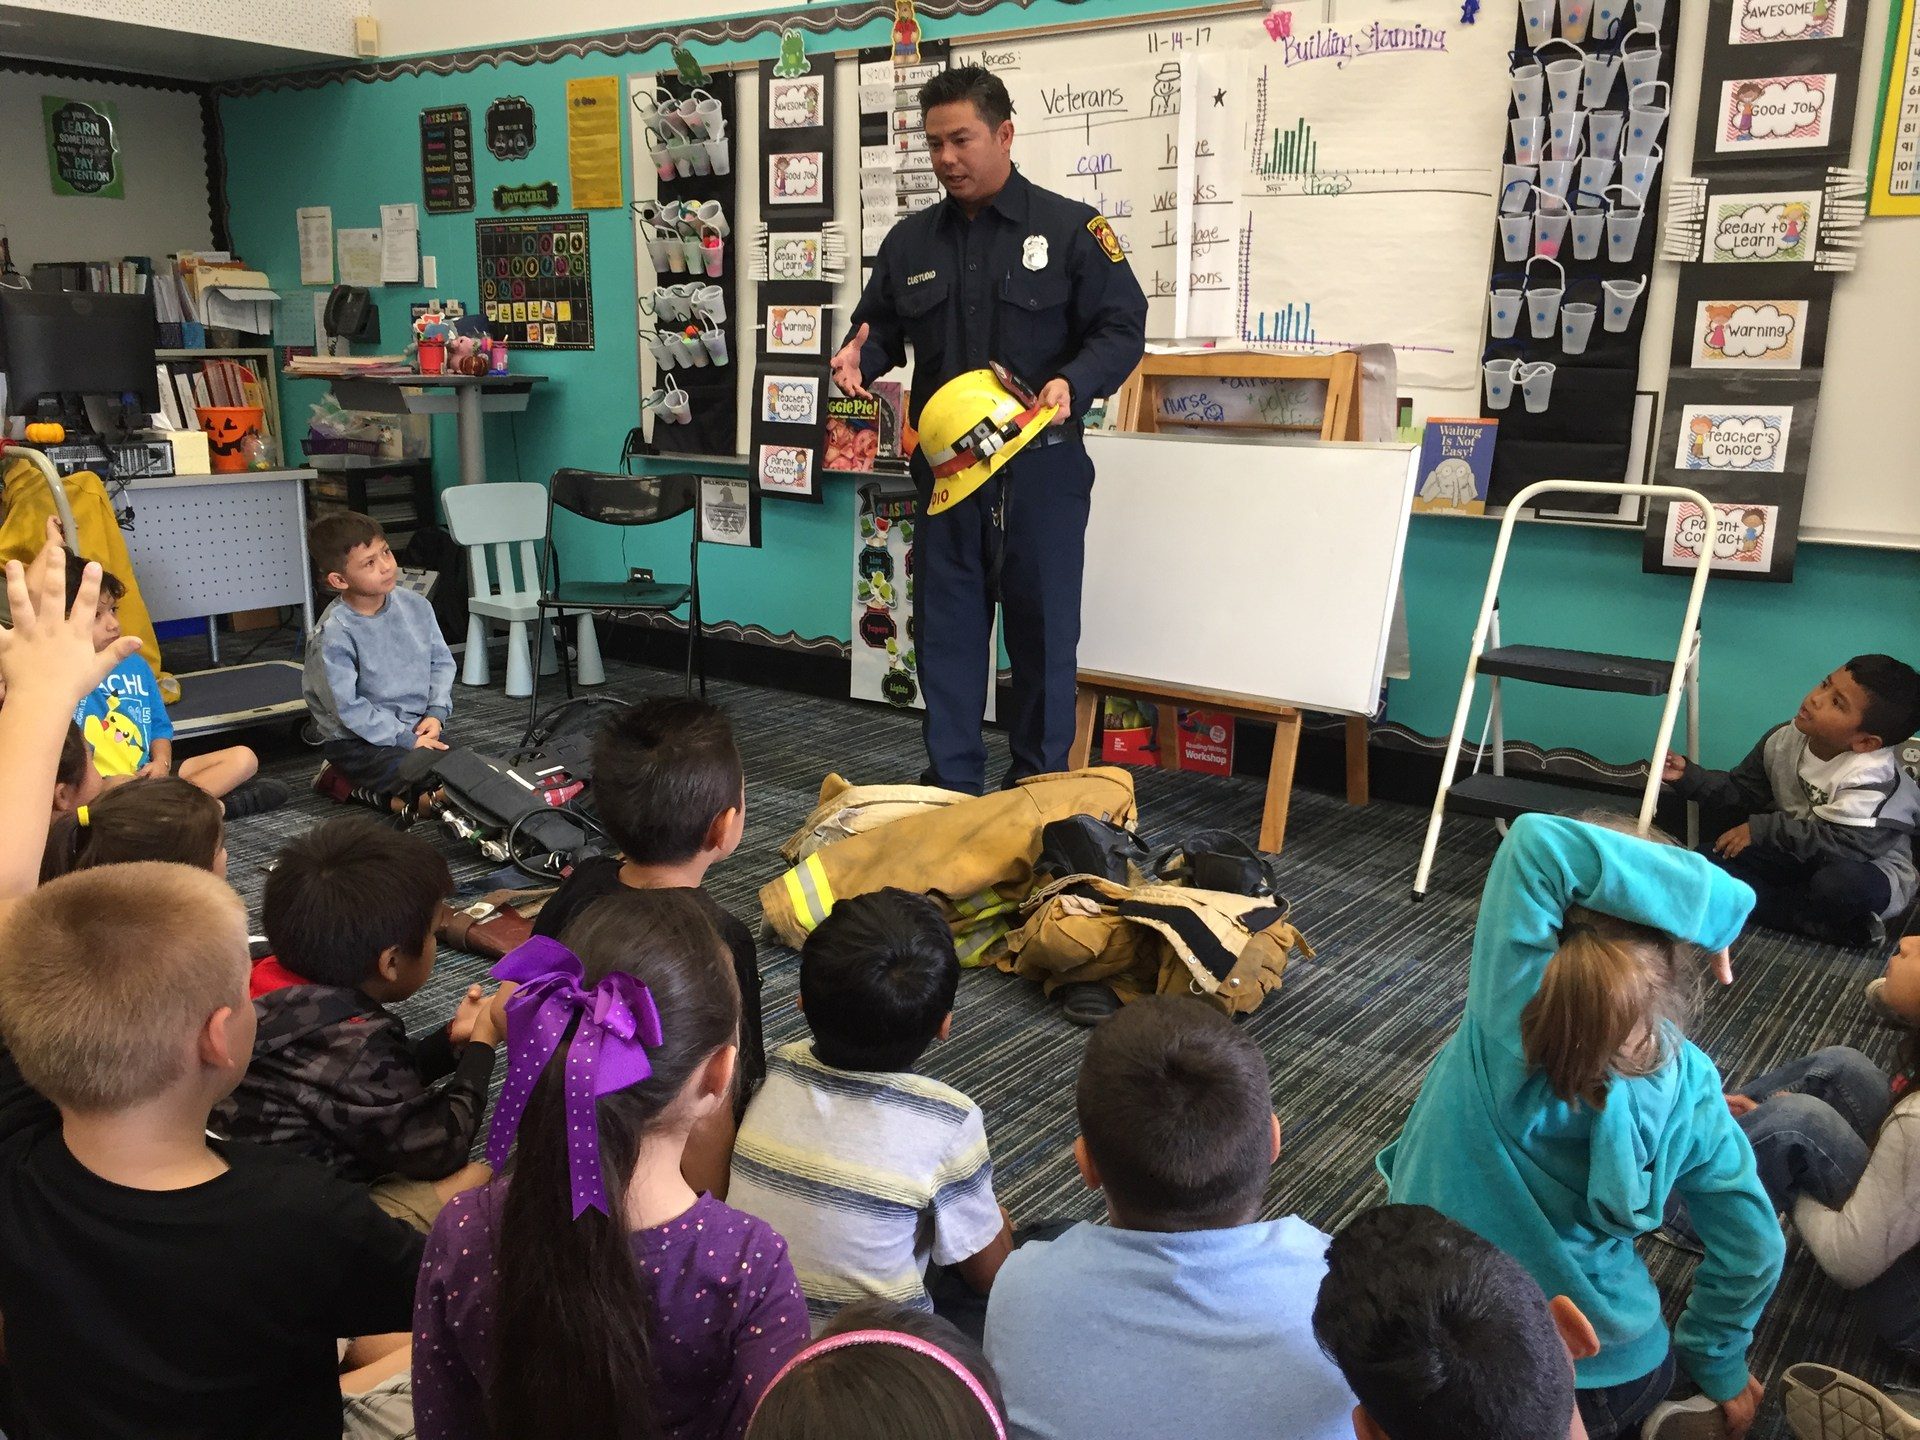 Bombero Señor Custodio visito nuestra clase. Firefighter Mr. Custodio visited our classroom.